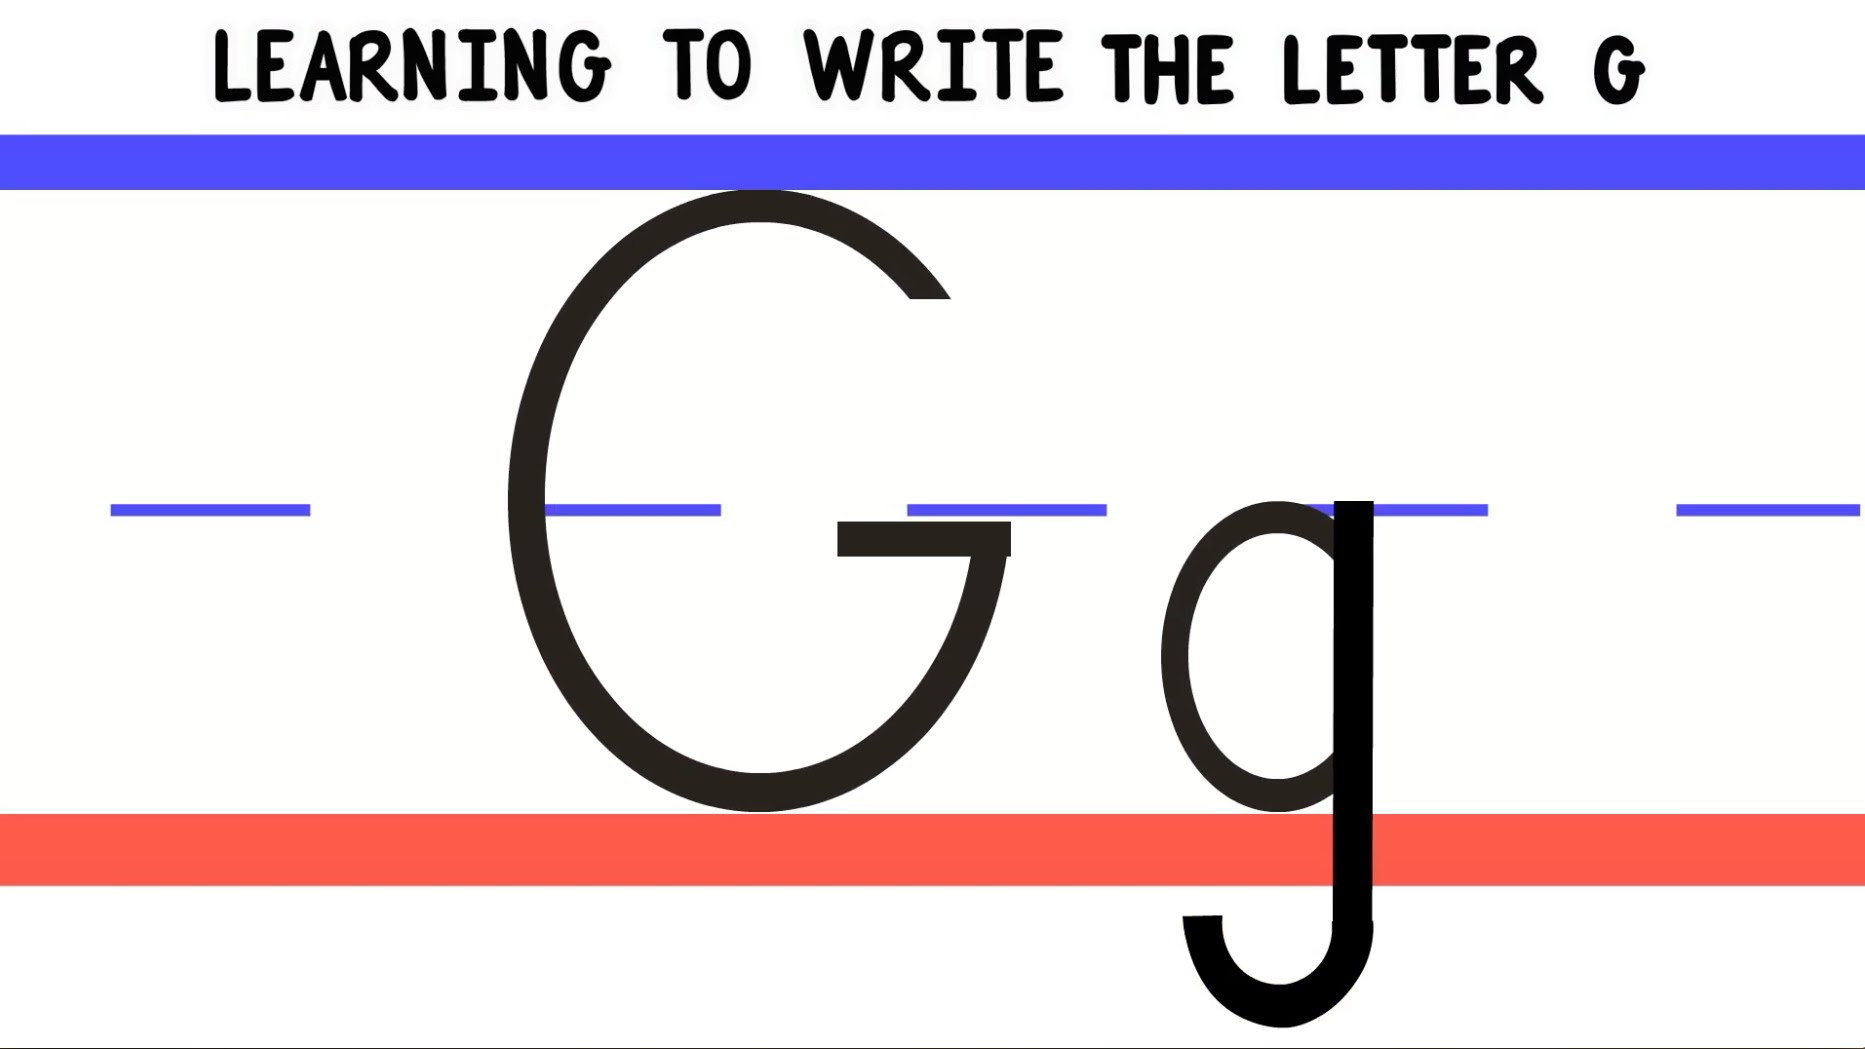 Write The Letter G